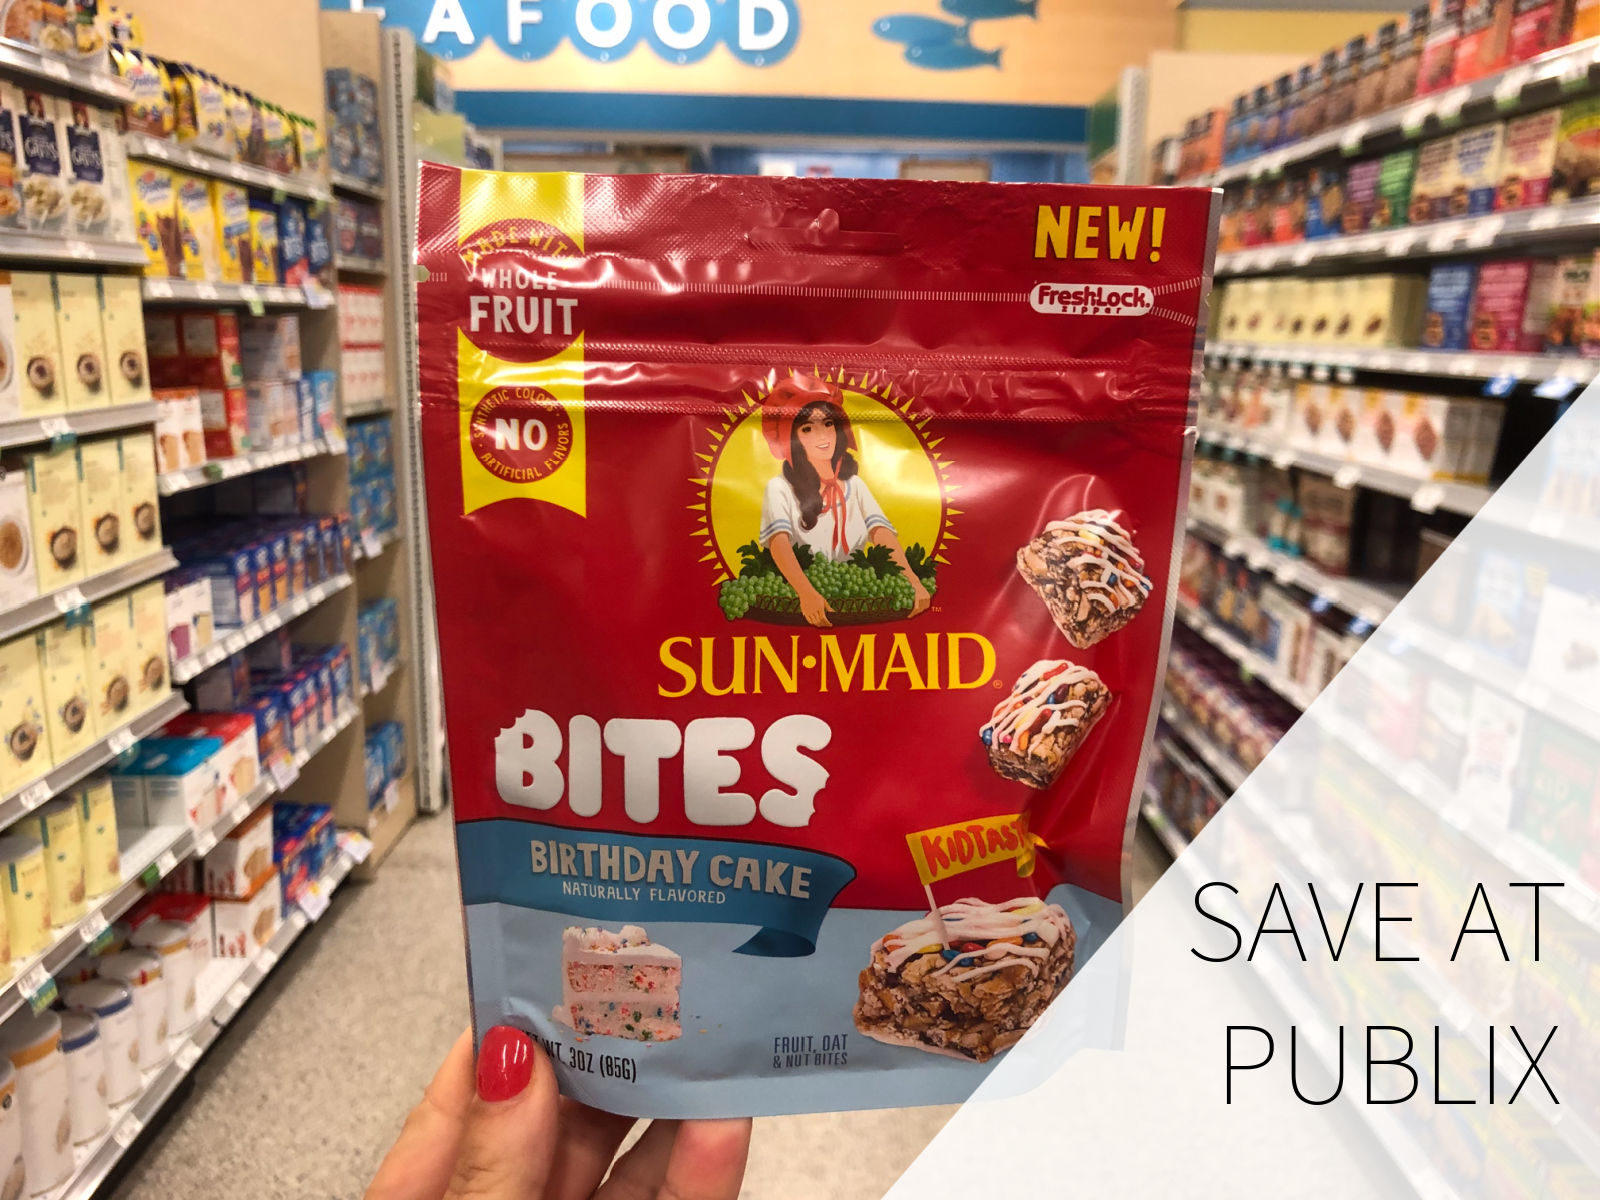 Try New Sun-Maid Bites At A HUGE Discount + A Giveaway (Four Readers Will Win A $50 Publix Gift Card) on I Heart Publix